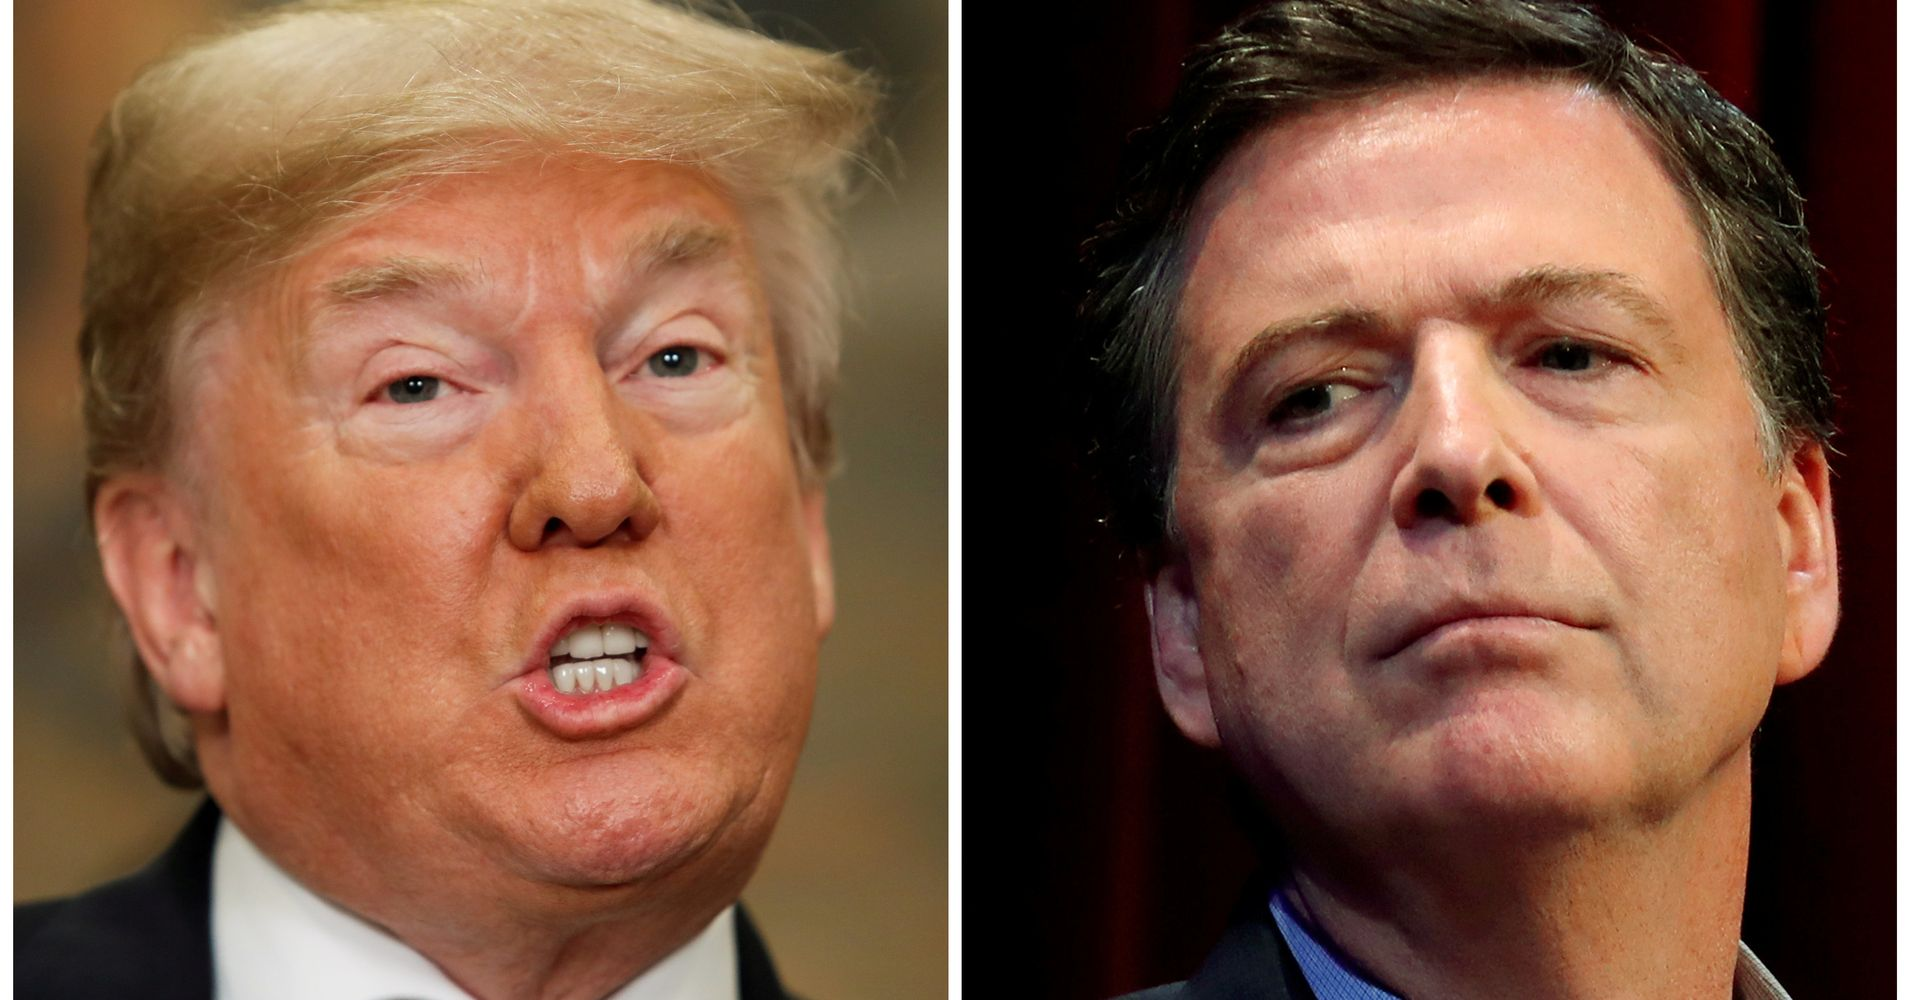 'Viva Le Resistance': FBI Anti-Trump Messages Give President More 'Deep State' Fodder